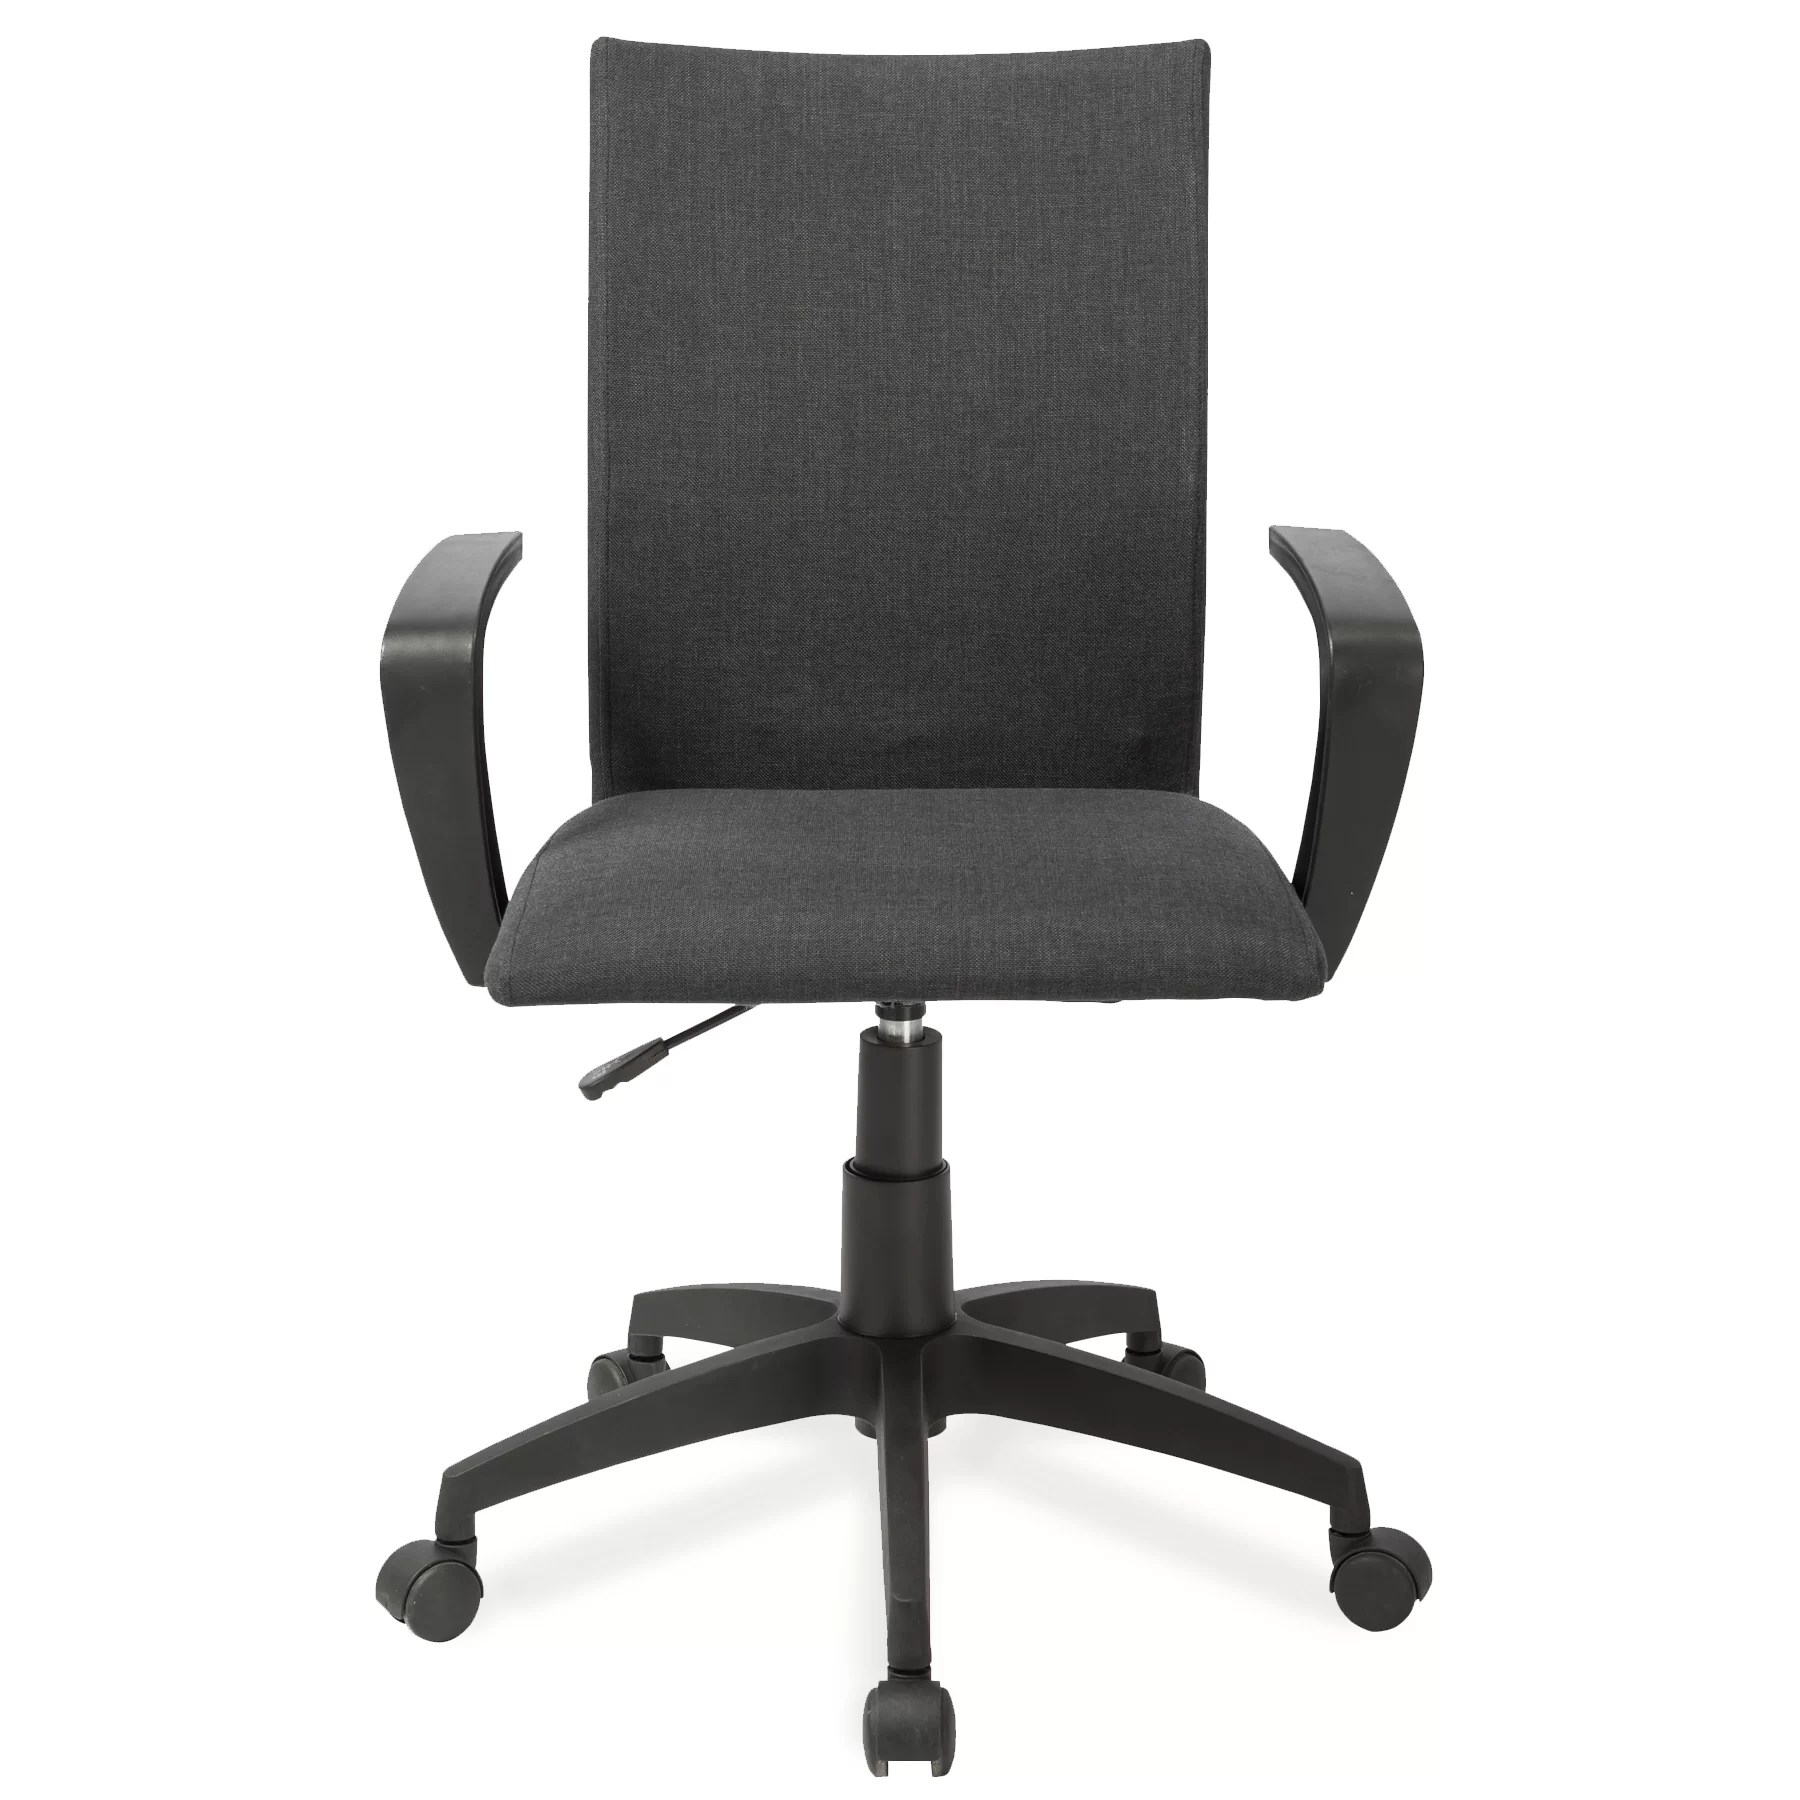 Office Chair With Arms Leick High Back Office Chair With Arms And Reviews Wayfair